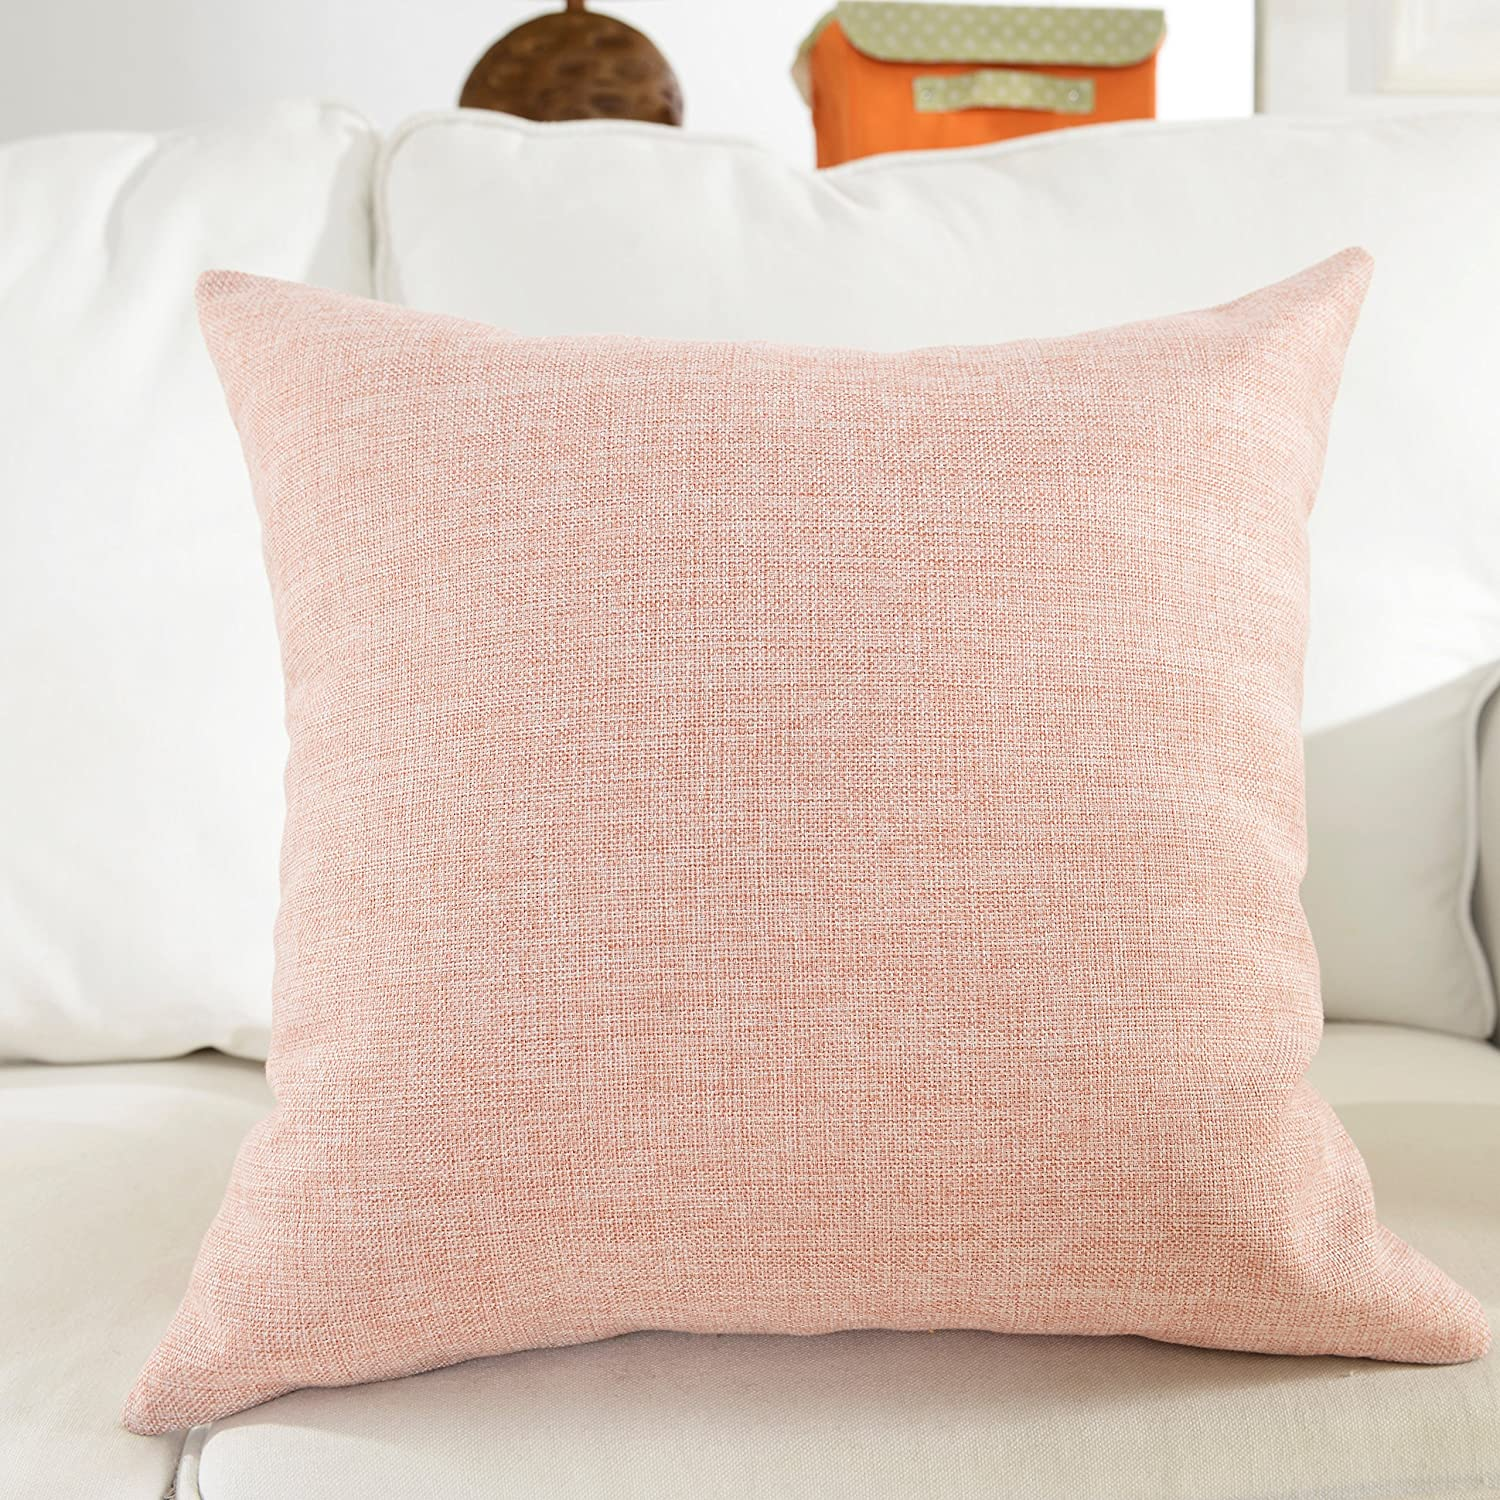 "Home Brilliant Decorative Lined Linen Euro Pillow Cover Cushion Case For Floor, 24""X24"", Baby Pink by Home Brilliant"